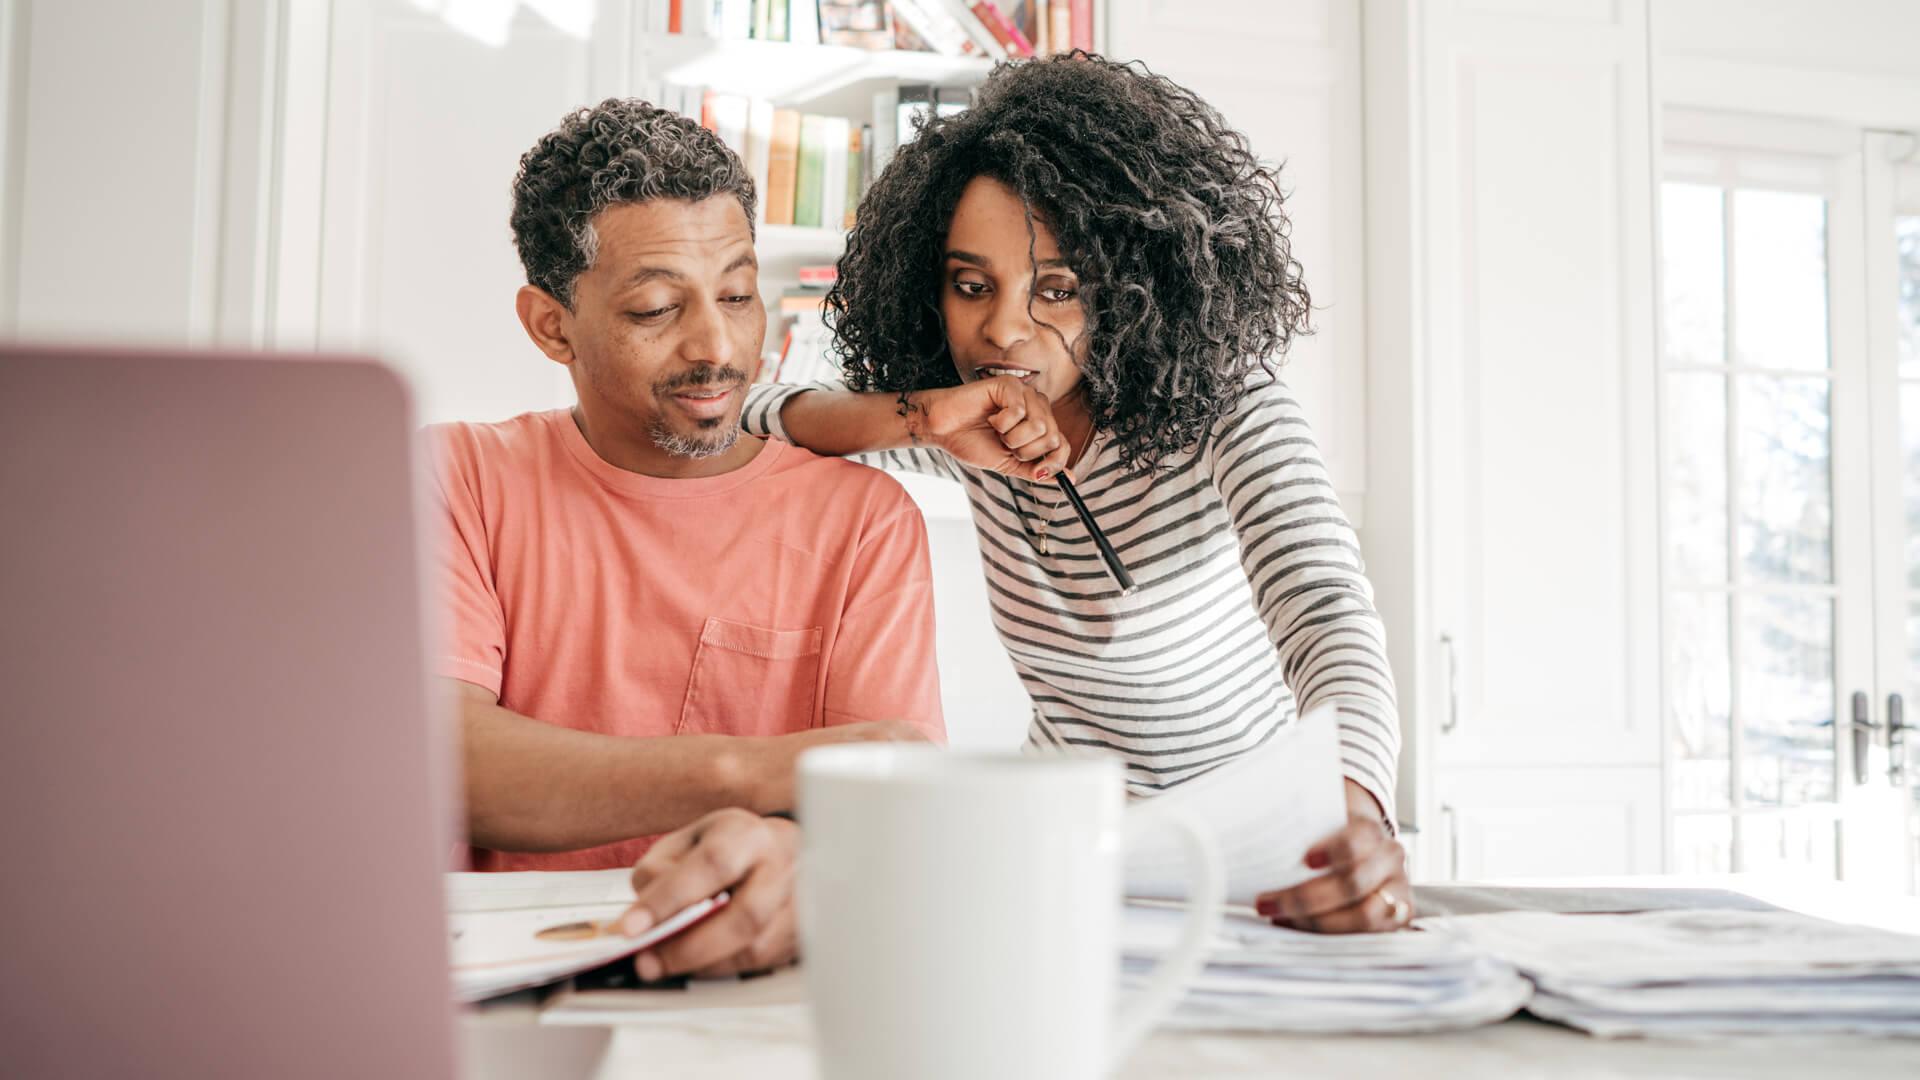 Couple and their financial planning in the kitchen with laptop.